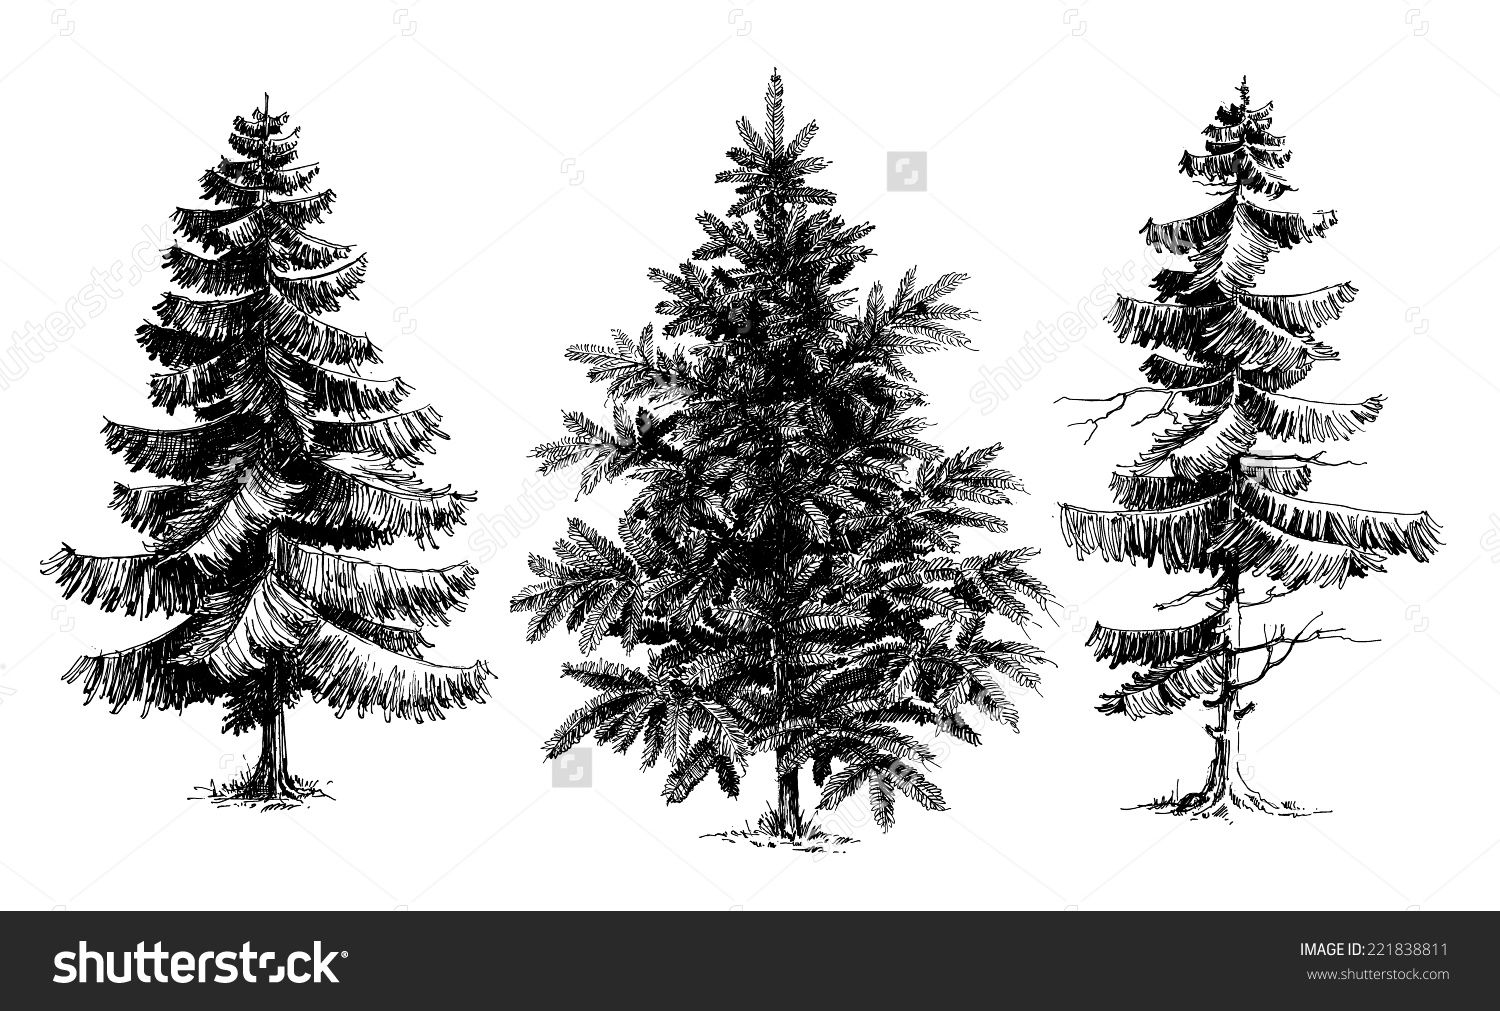 pine trees christmas trees realistic hand drawn vector set isolated over white buy this stock vector on shutterstock find other images